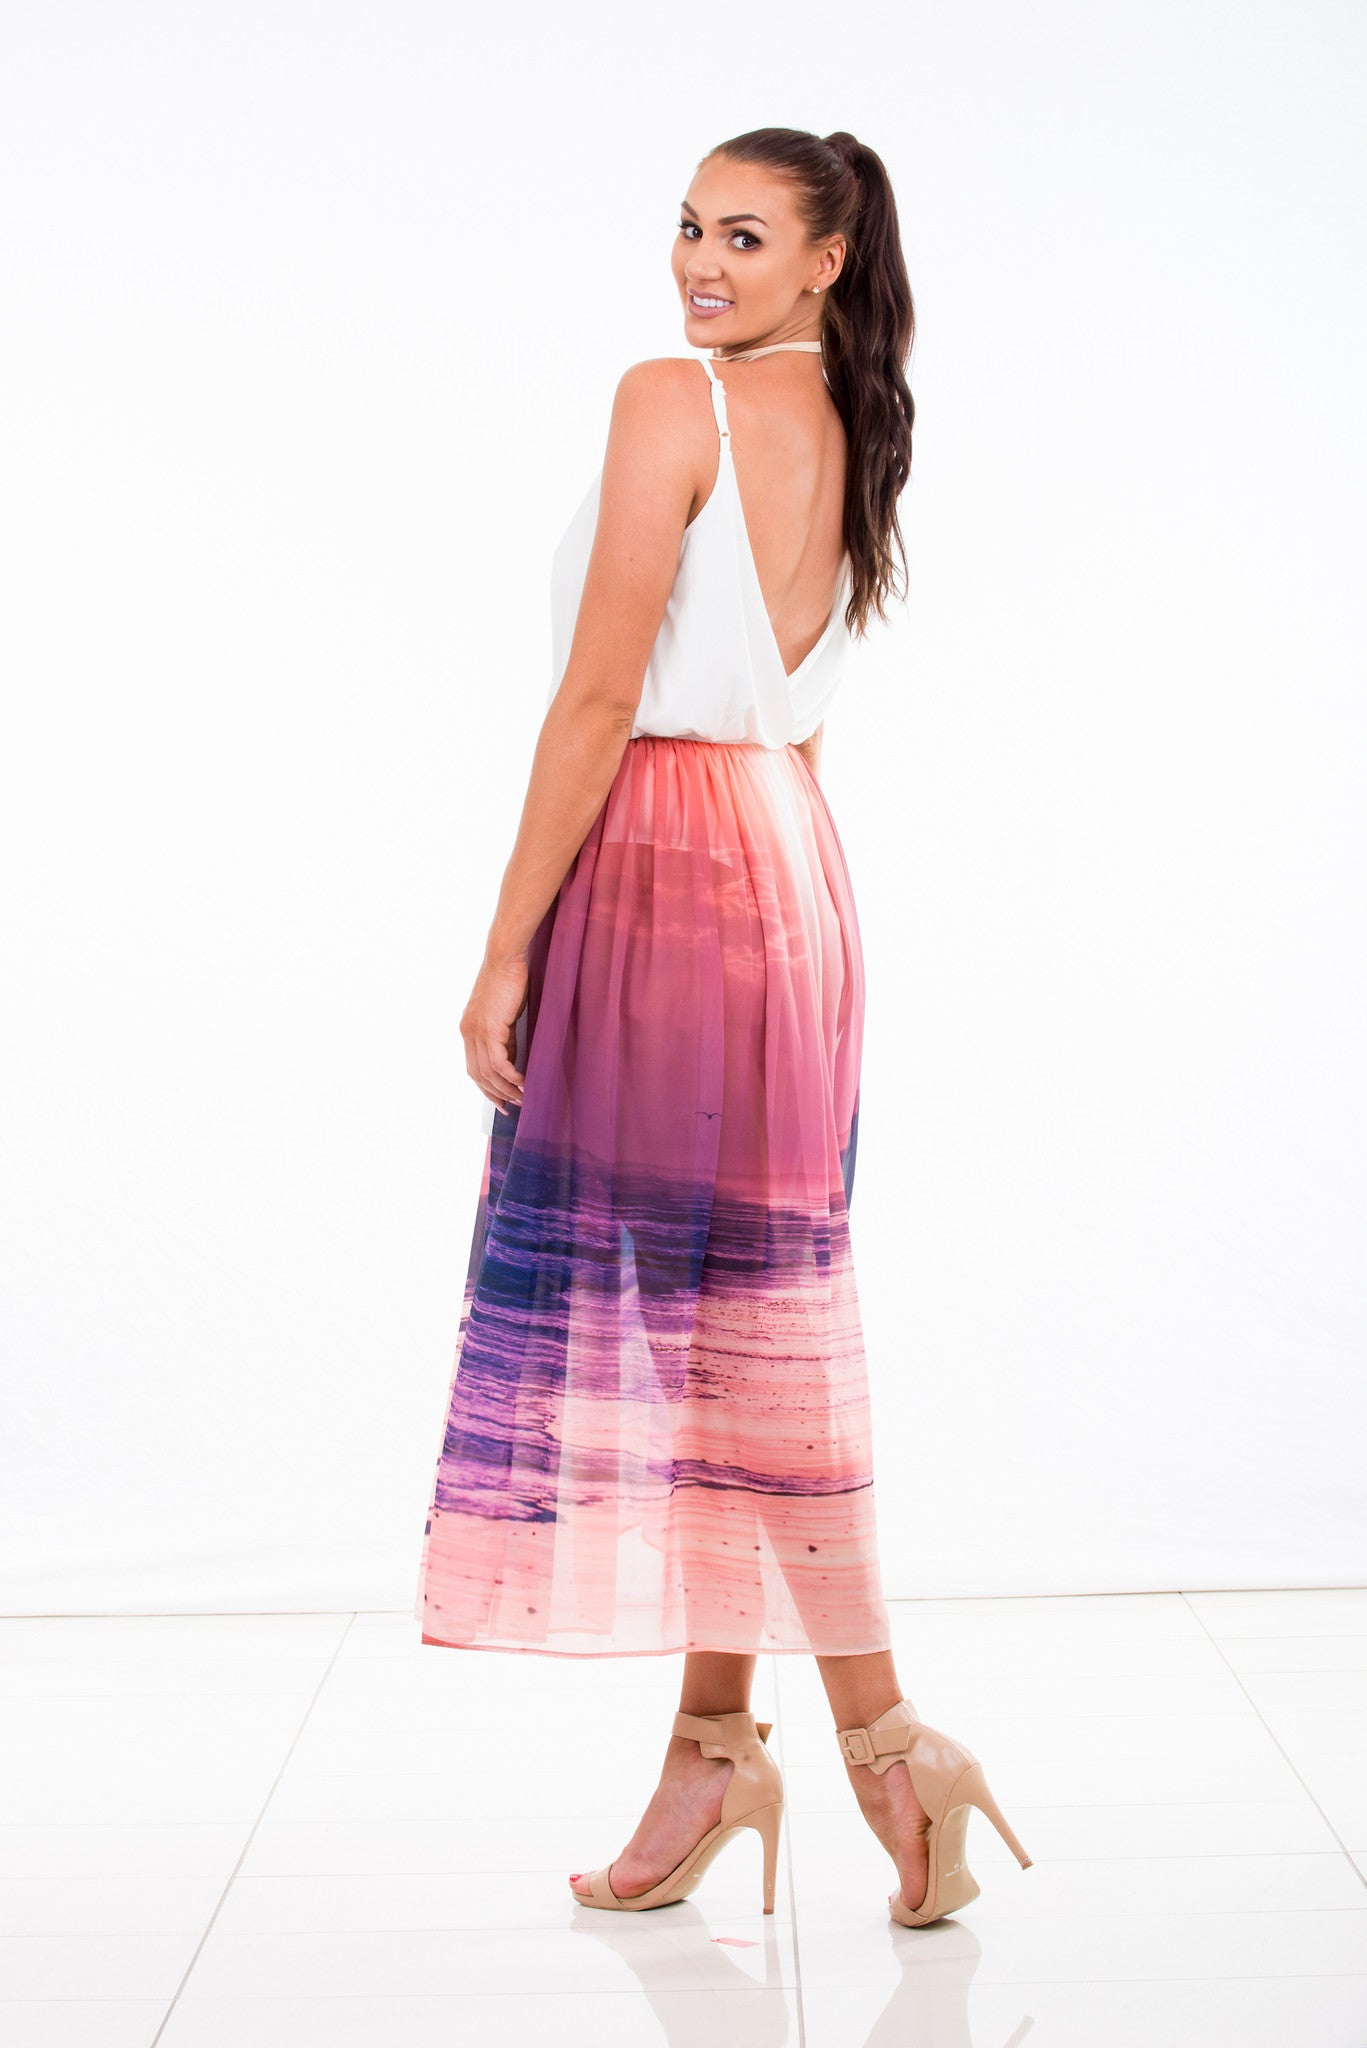 womens skirt chiffon wrap sunset print purple pink